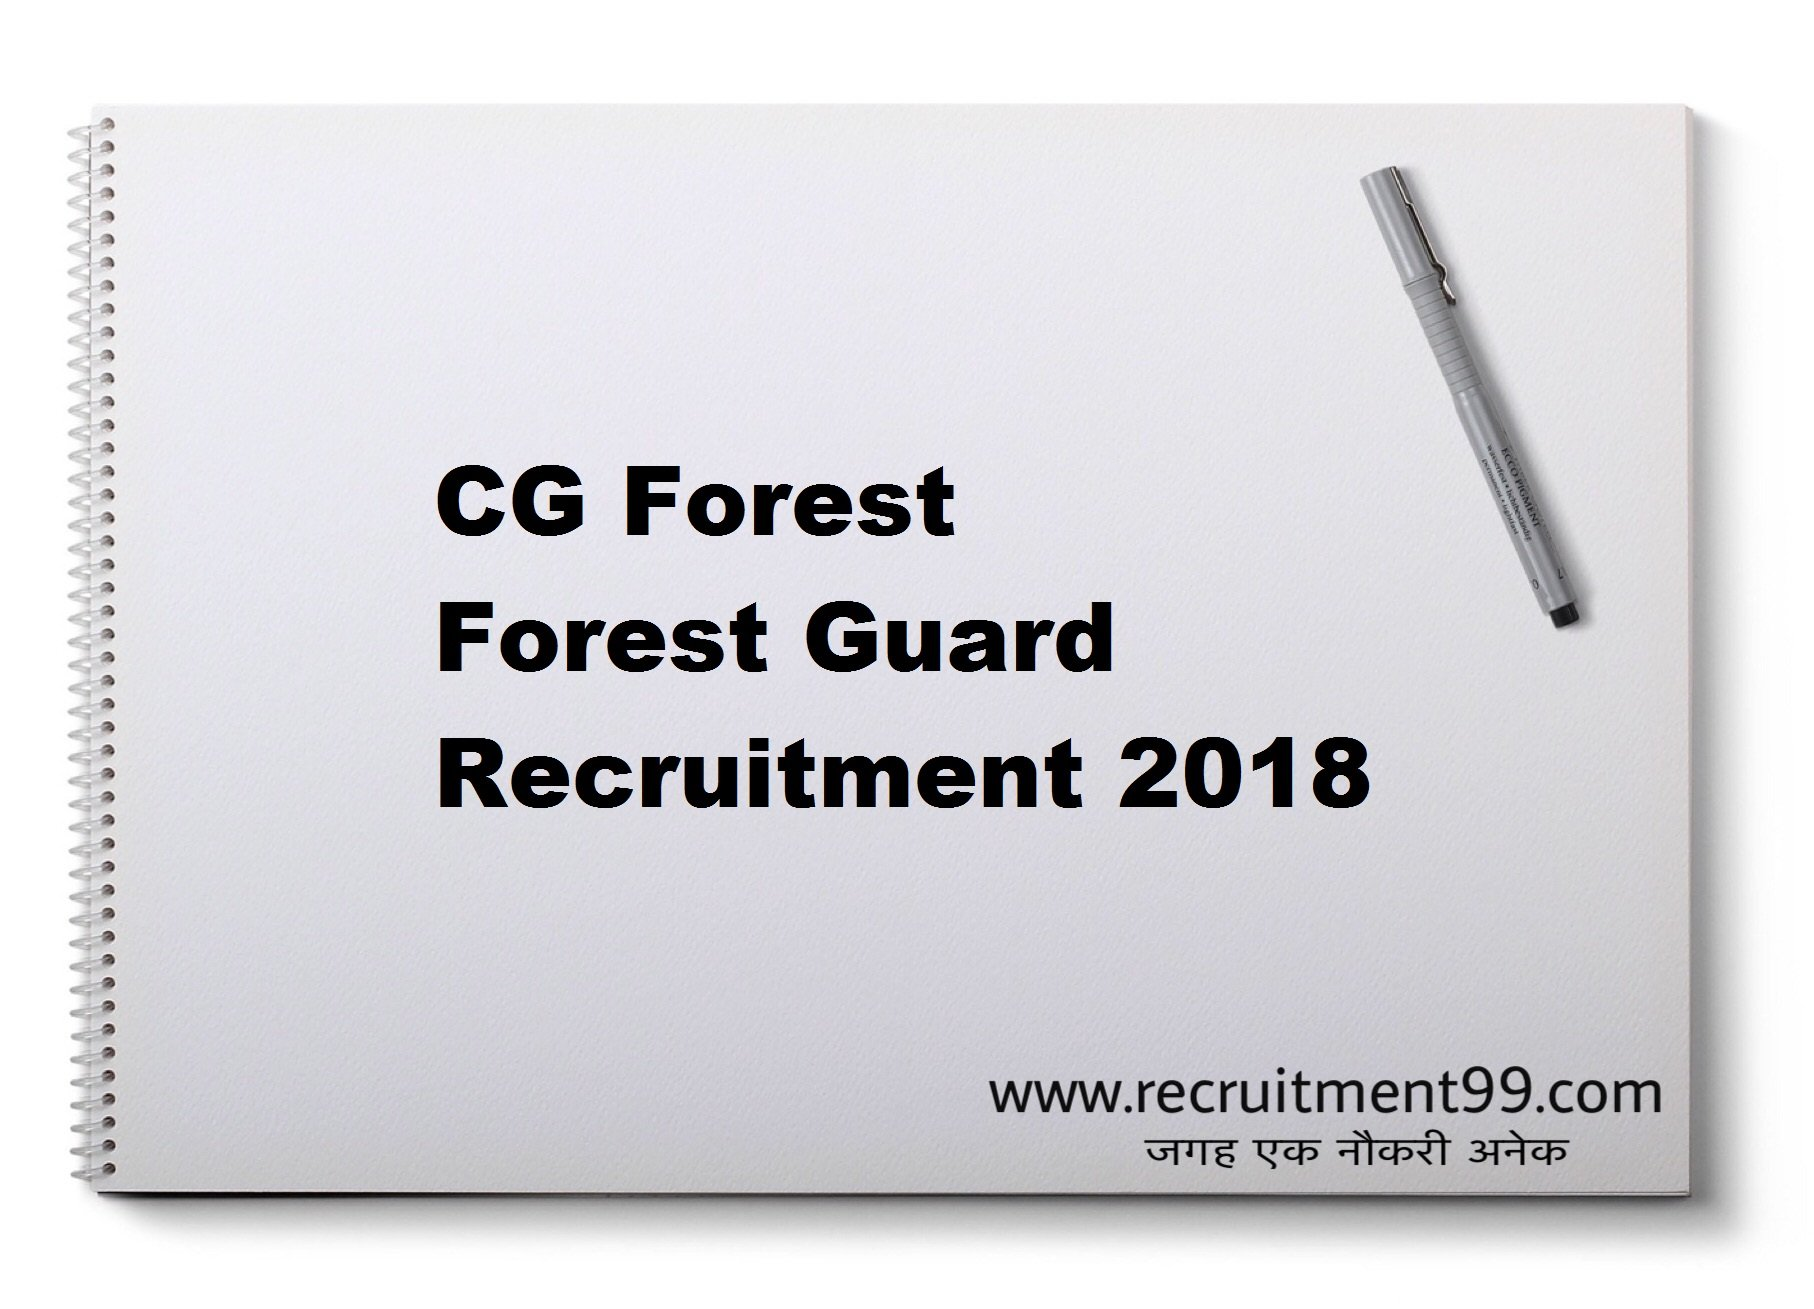 CG Forest Forest Guard Recruitment Admit Card Result 2018